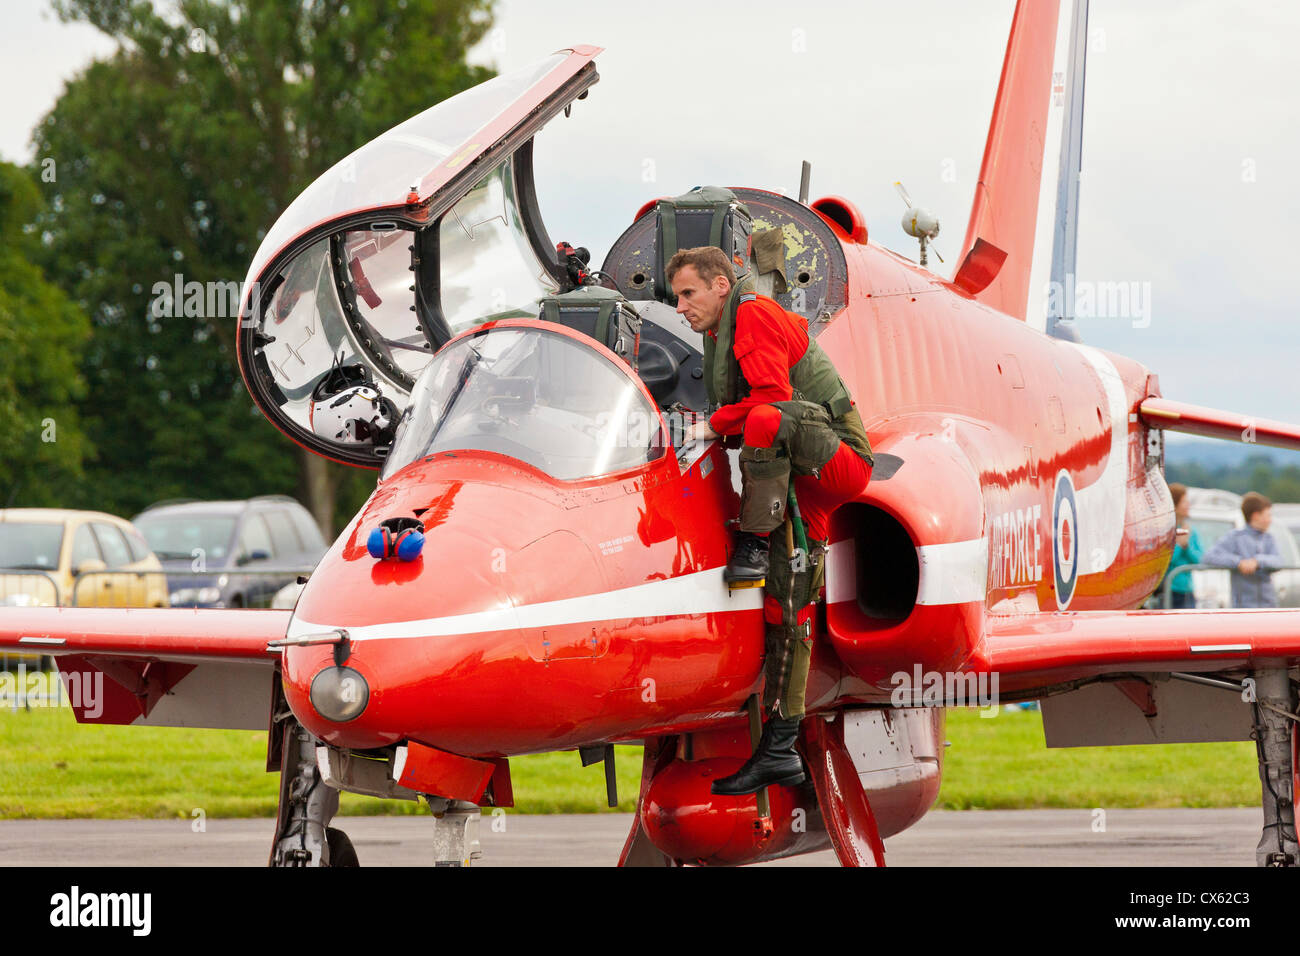 RAF Red Arrows Hawk pilot climbs out of his aircraft at Kemble Airport after the aerobatic display has ended. JMH6098 - Stock Image